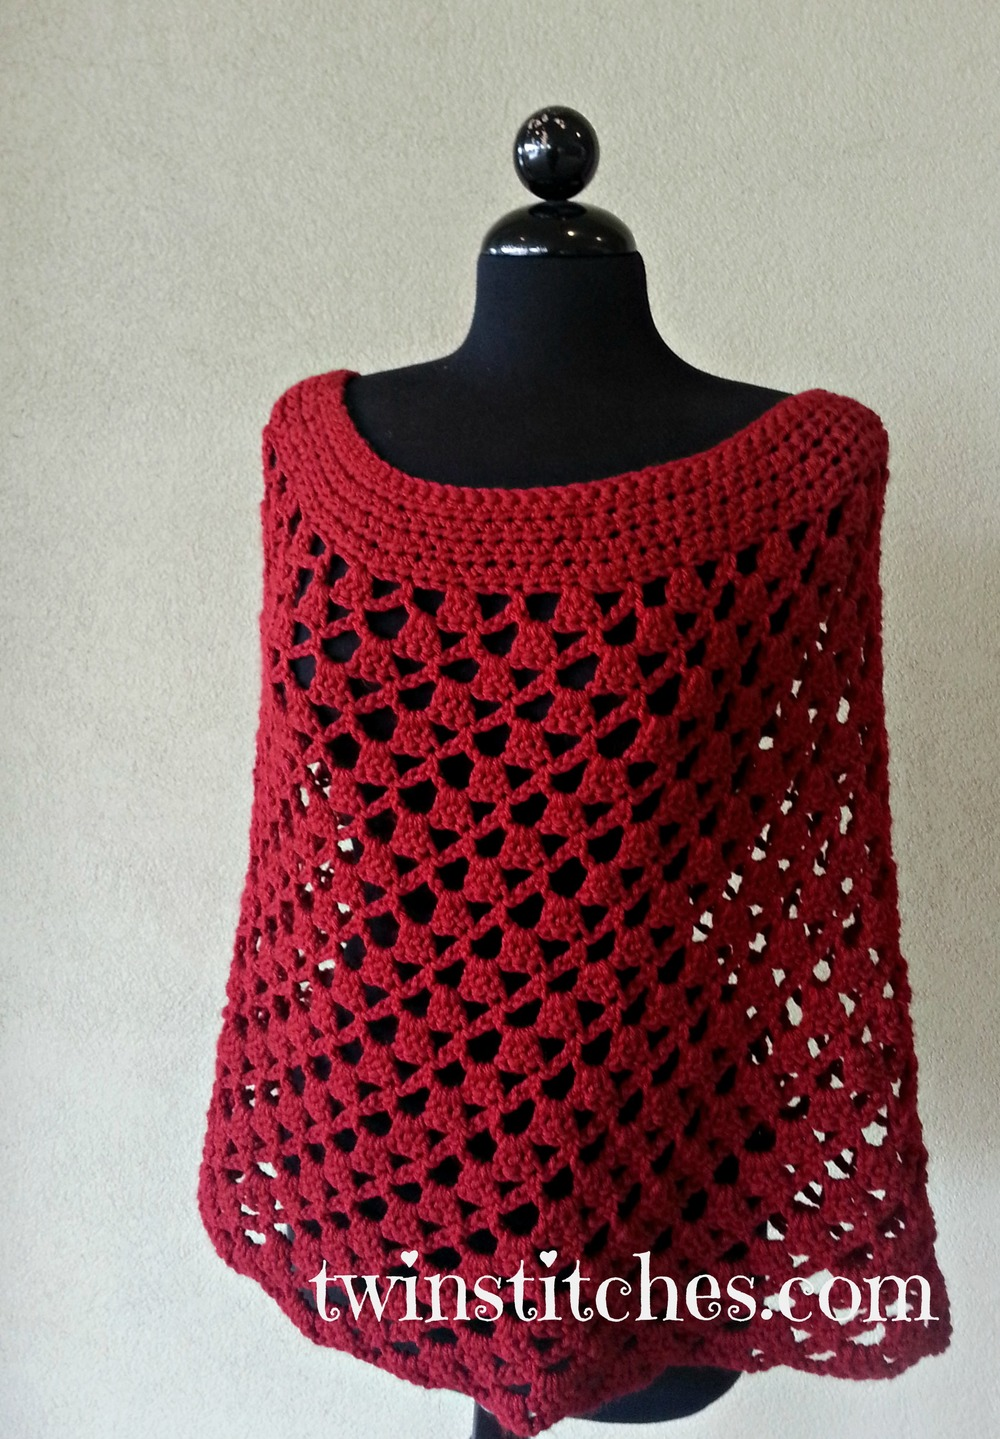 Free Crochet Pattern For A Baby Cowgirl Outfit : Scarlett Spiral Crochet Poncho AllFreeCrochet.com